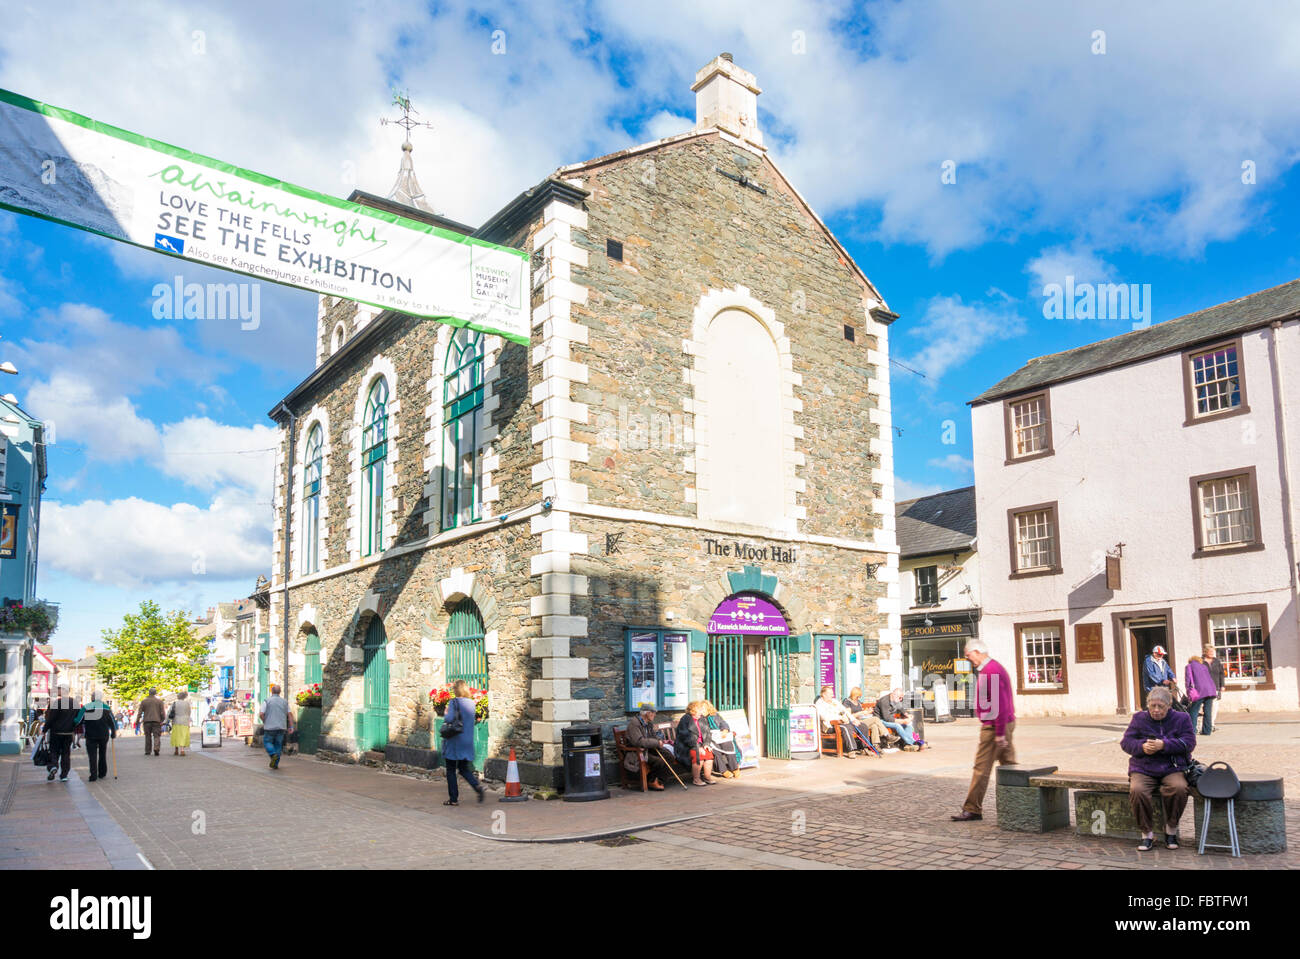 The Moot Hall tourist information centre in Keswick town centre Lake district Cumbria England GB UK EU Europe - Stock Image